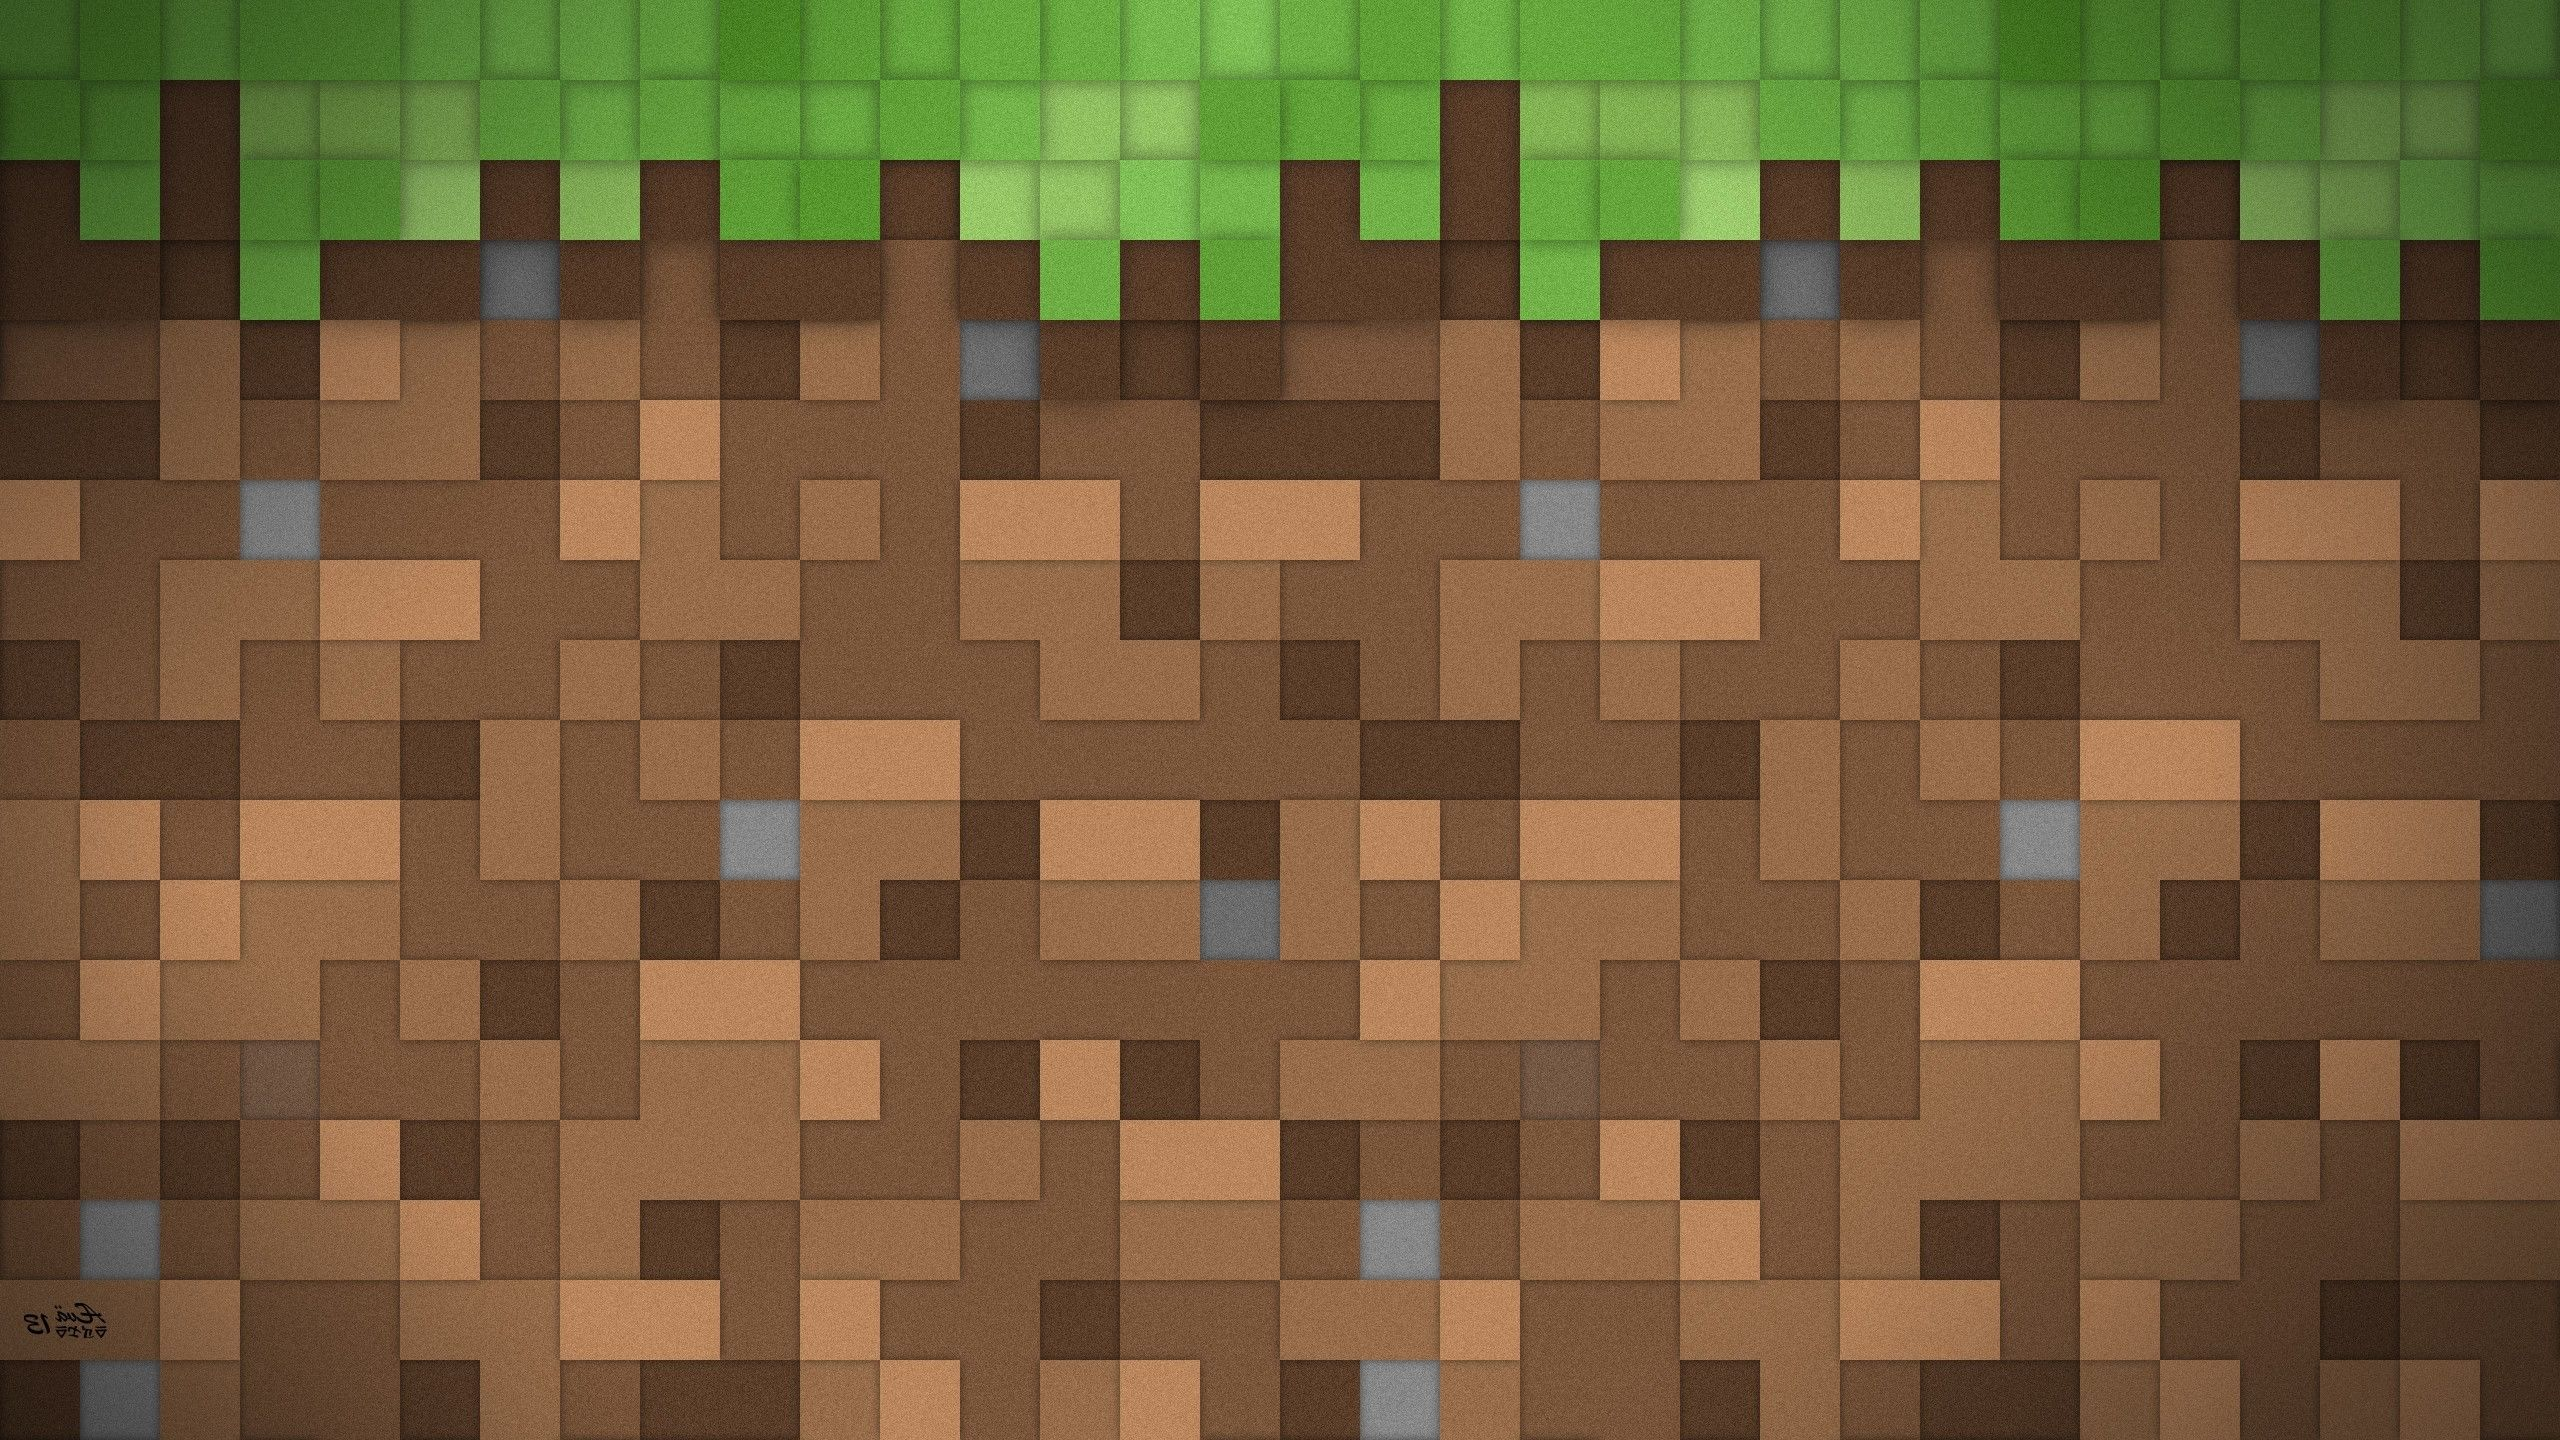 Minecraft Block Wallpapers Top Free Minecraft Block Backgrounds Wallpaperaccess